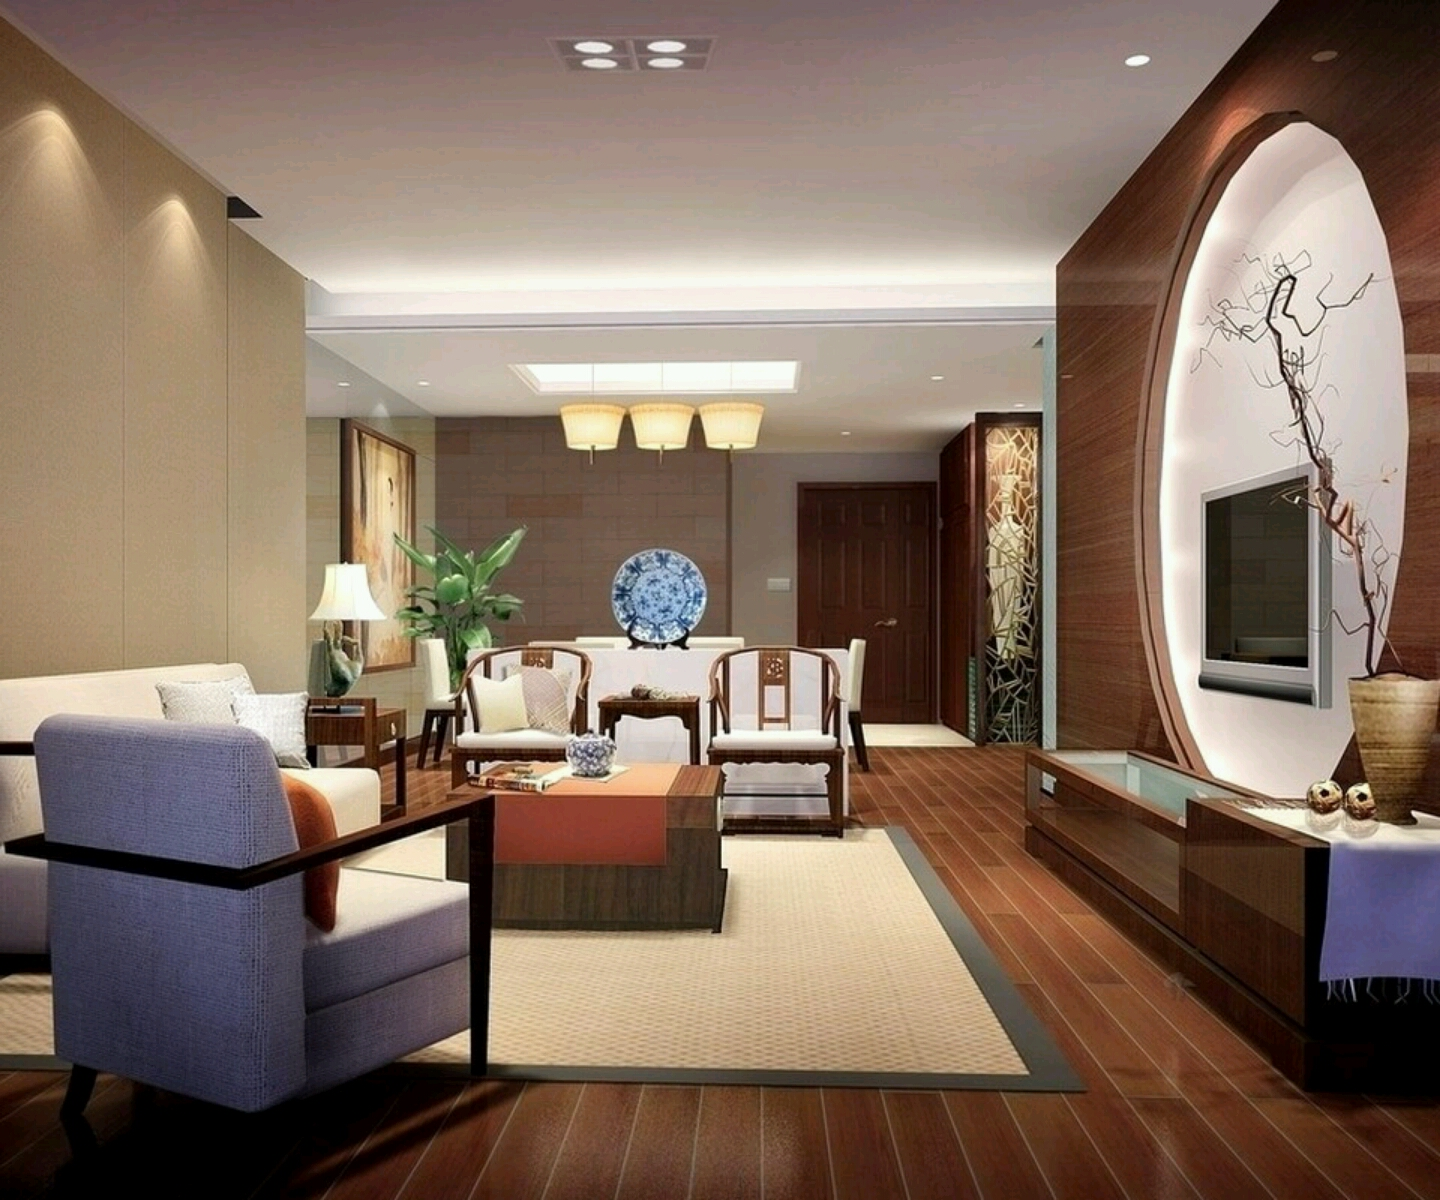 Luxury homes interior decoration living room designs ideas for Best interior design ideas living room